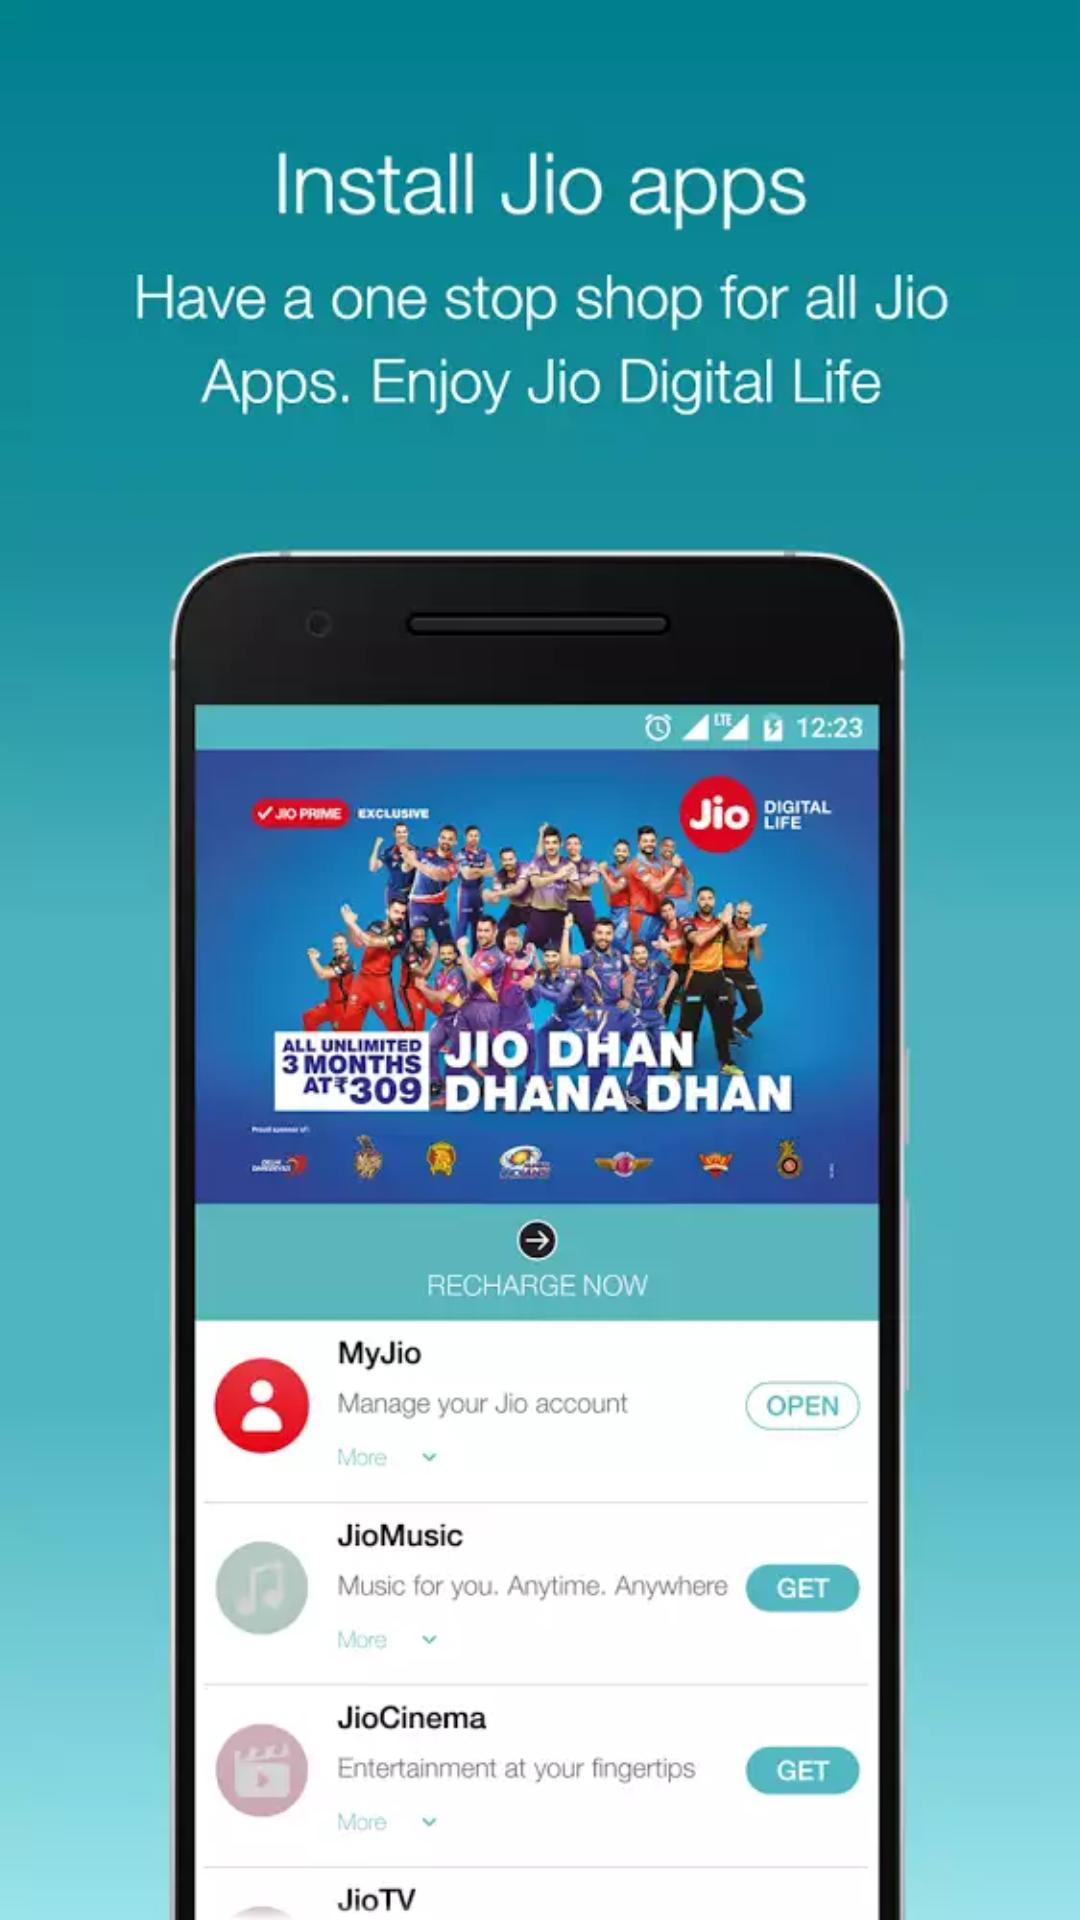 mCent - Free Mobile Recharge for Android - APK Download